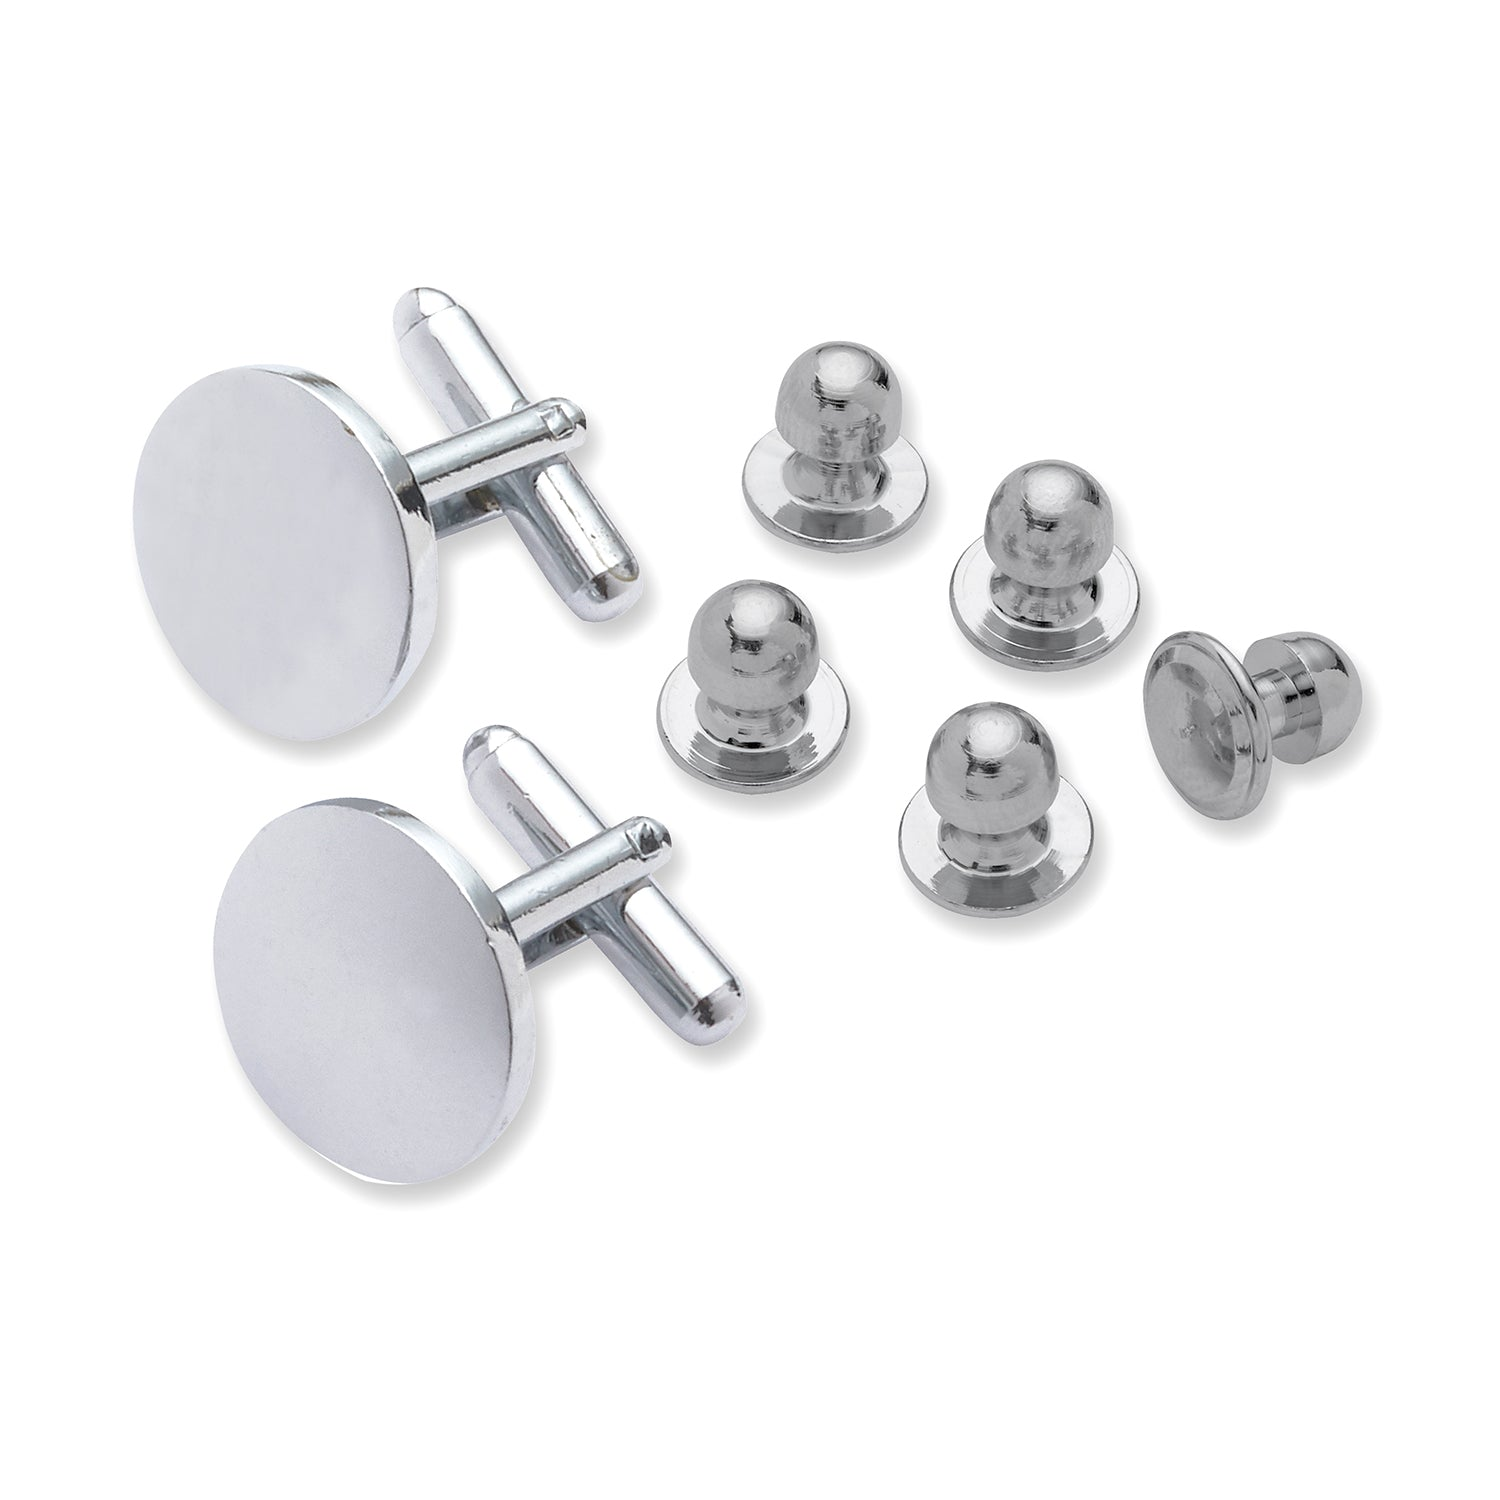 All Silver Cufflink & Stud Set-The Suit Spot-Wedding Suits-Wedding Tuxedos-Groomsmen Suits-Groomsmen Tuxedos-Slim Fit Suits-Slim Fit Tuxedos-Online wedding suits